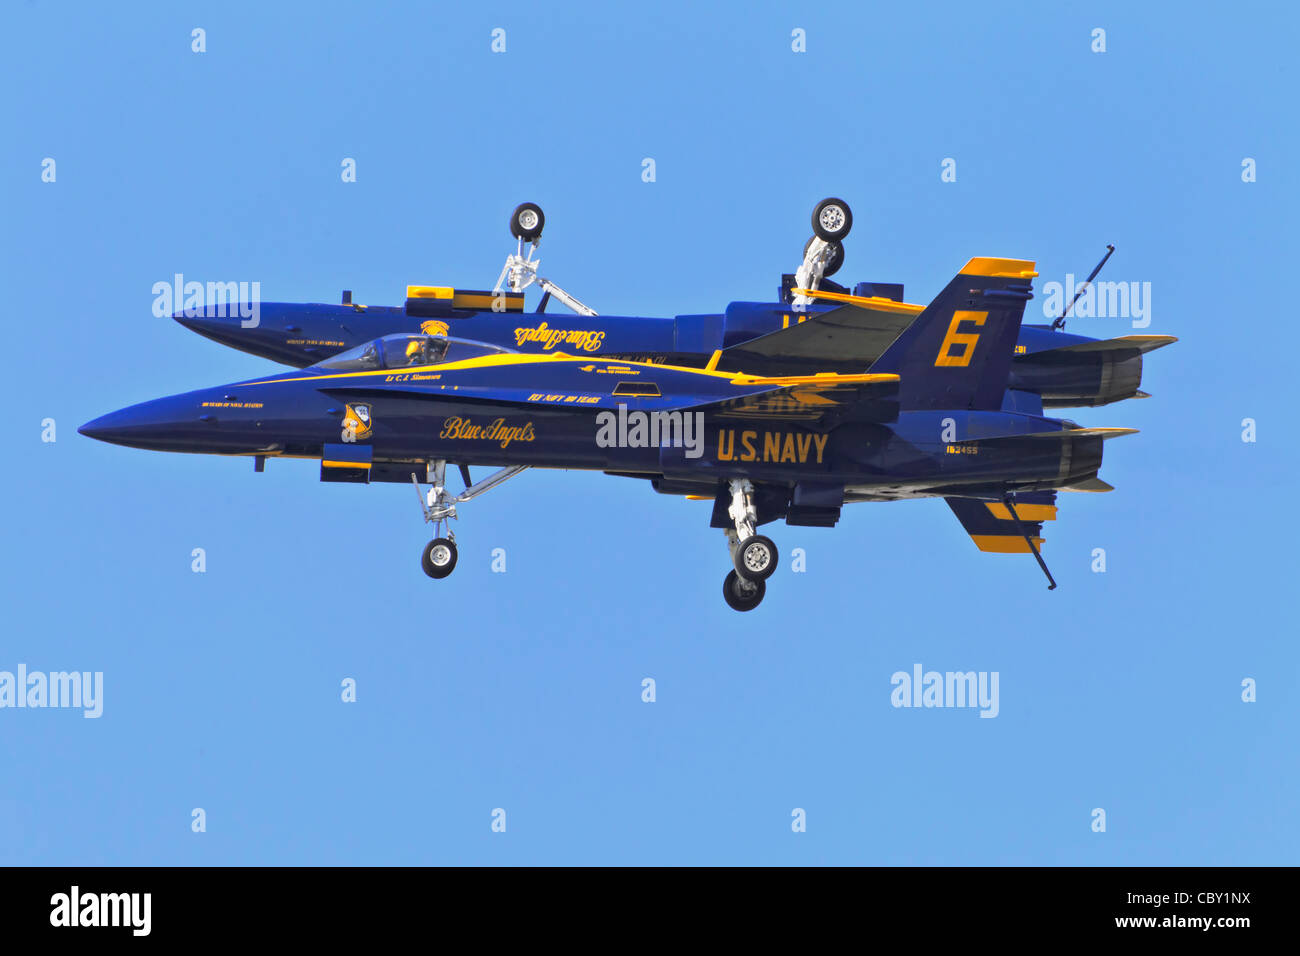 hight resolution of boeing f18 hornet stock image